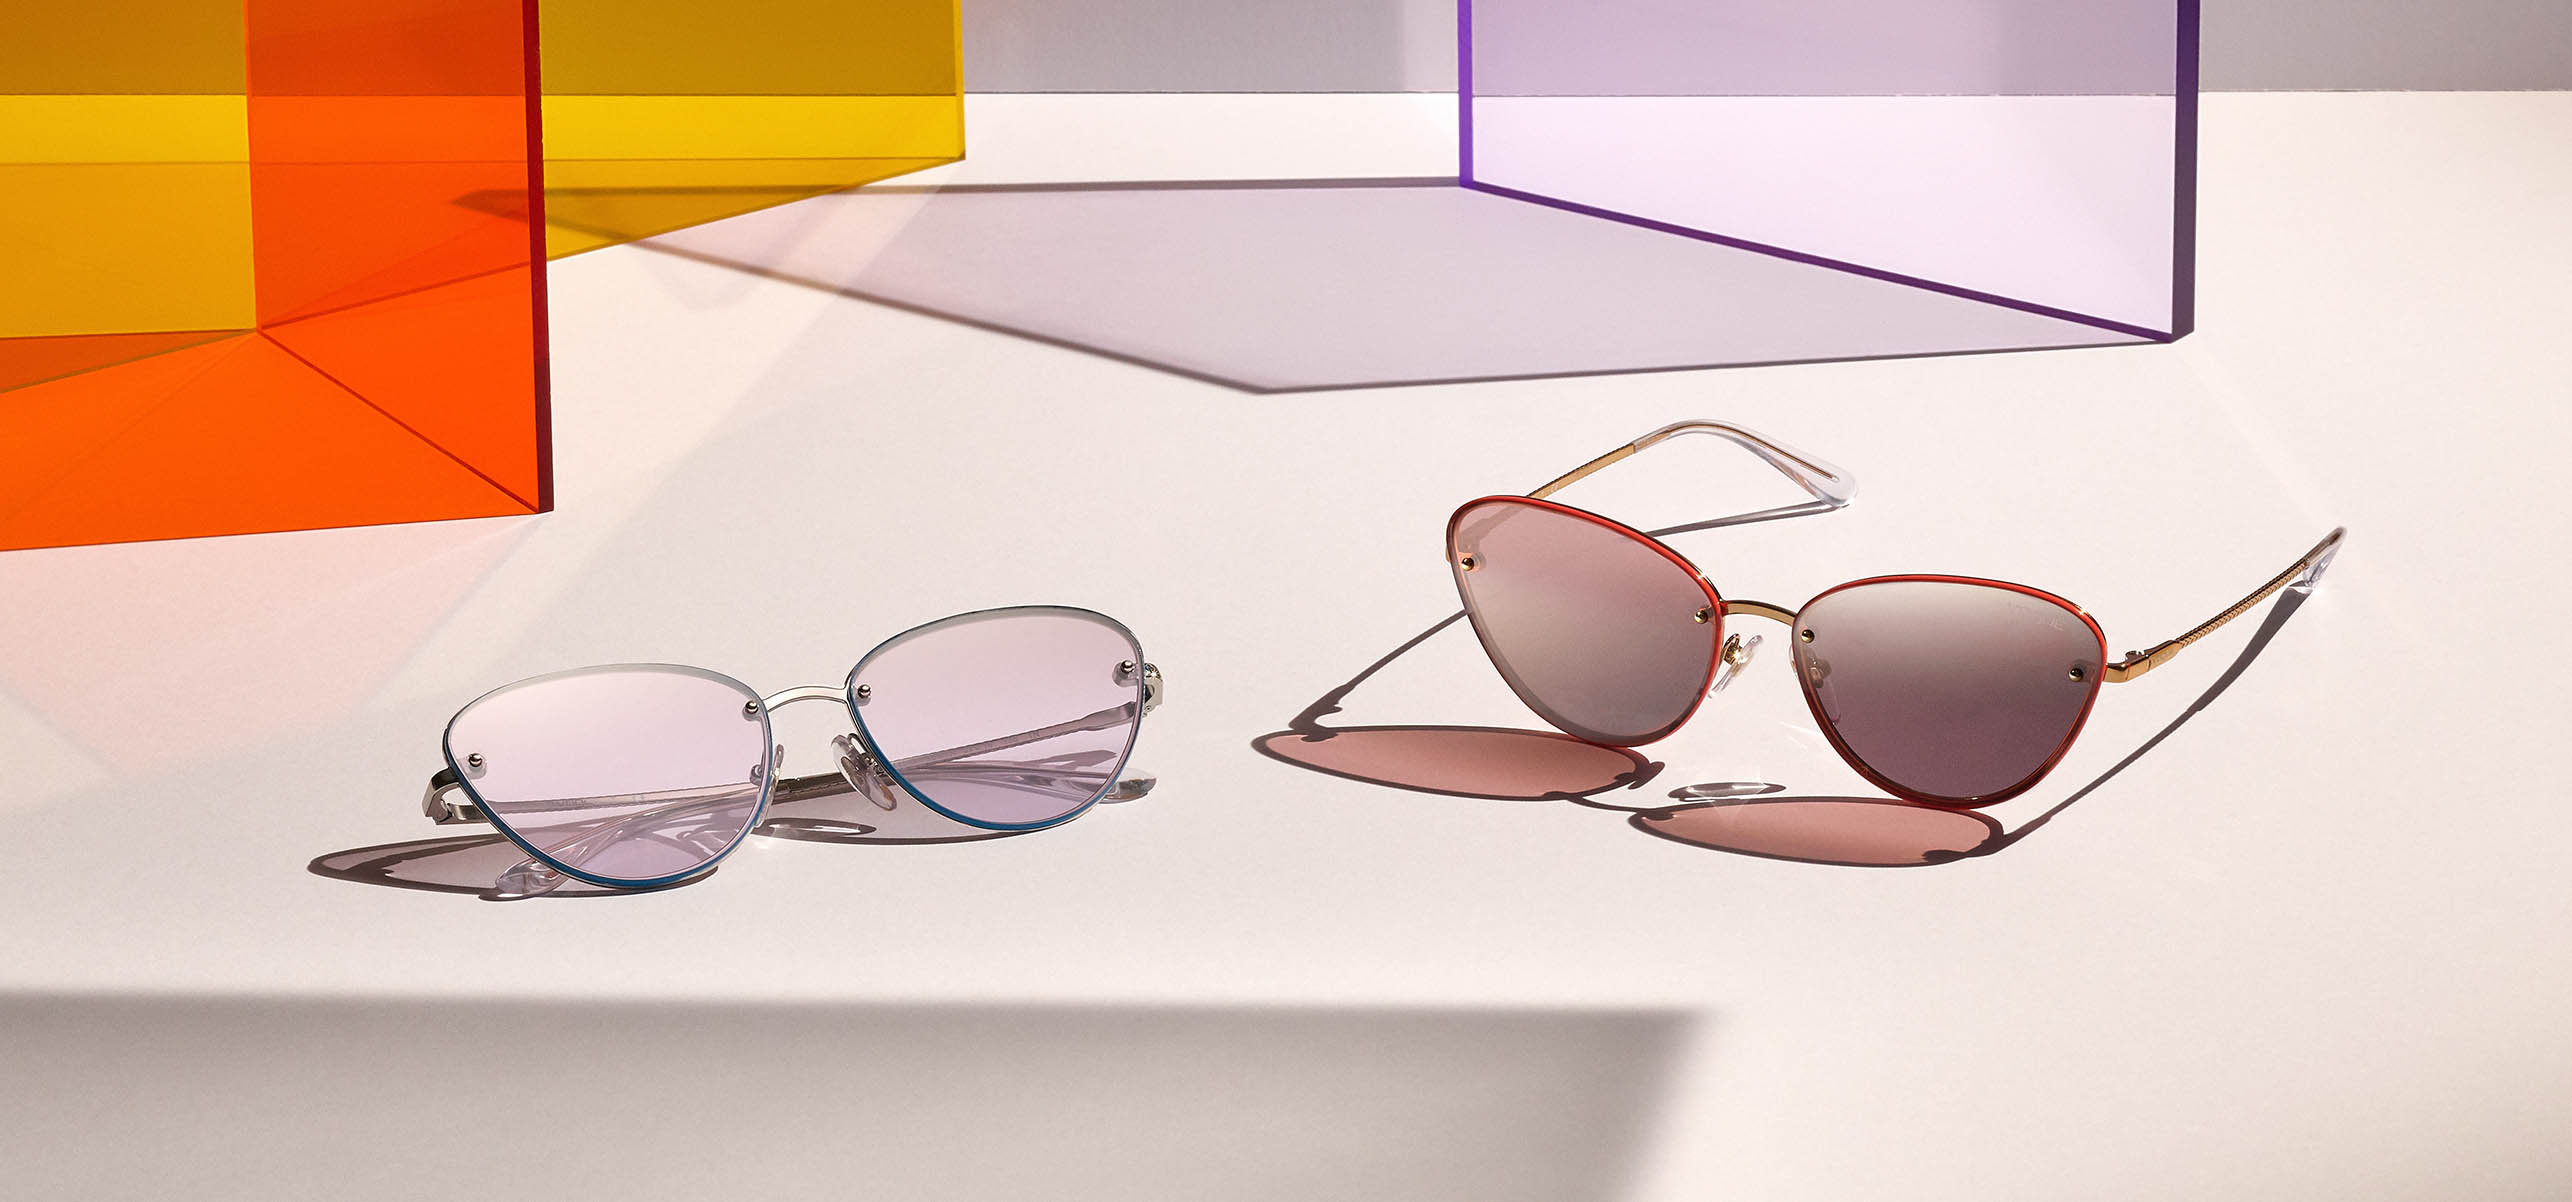 78929b79da21 A captivating rimless cat-eye shape gets a new feminine twist with edgy  color profiles.